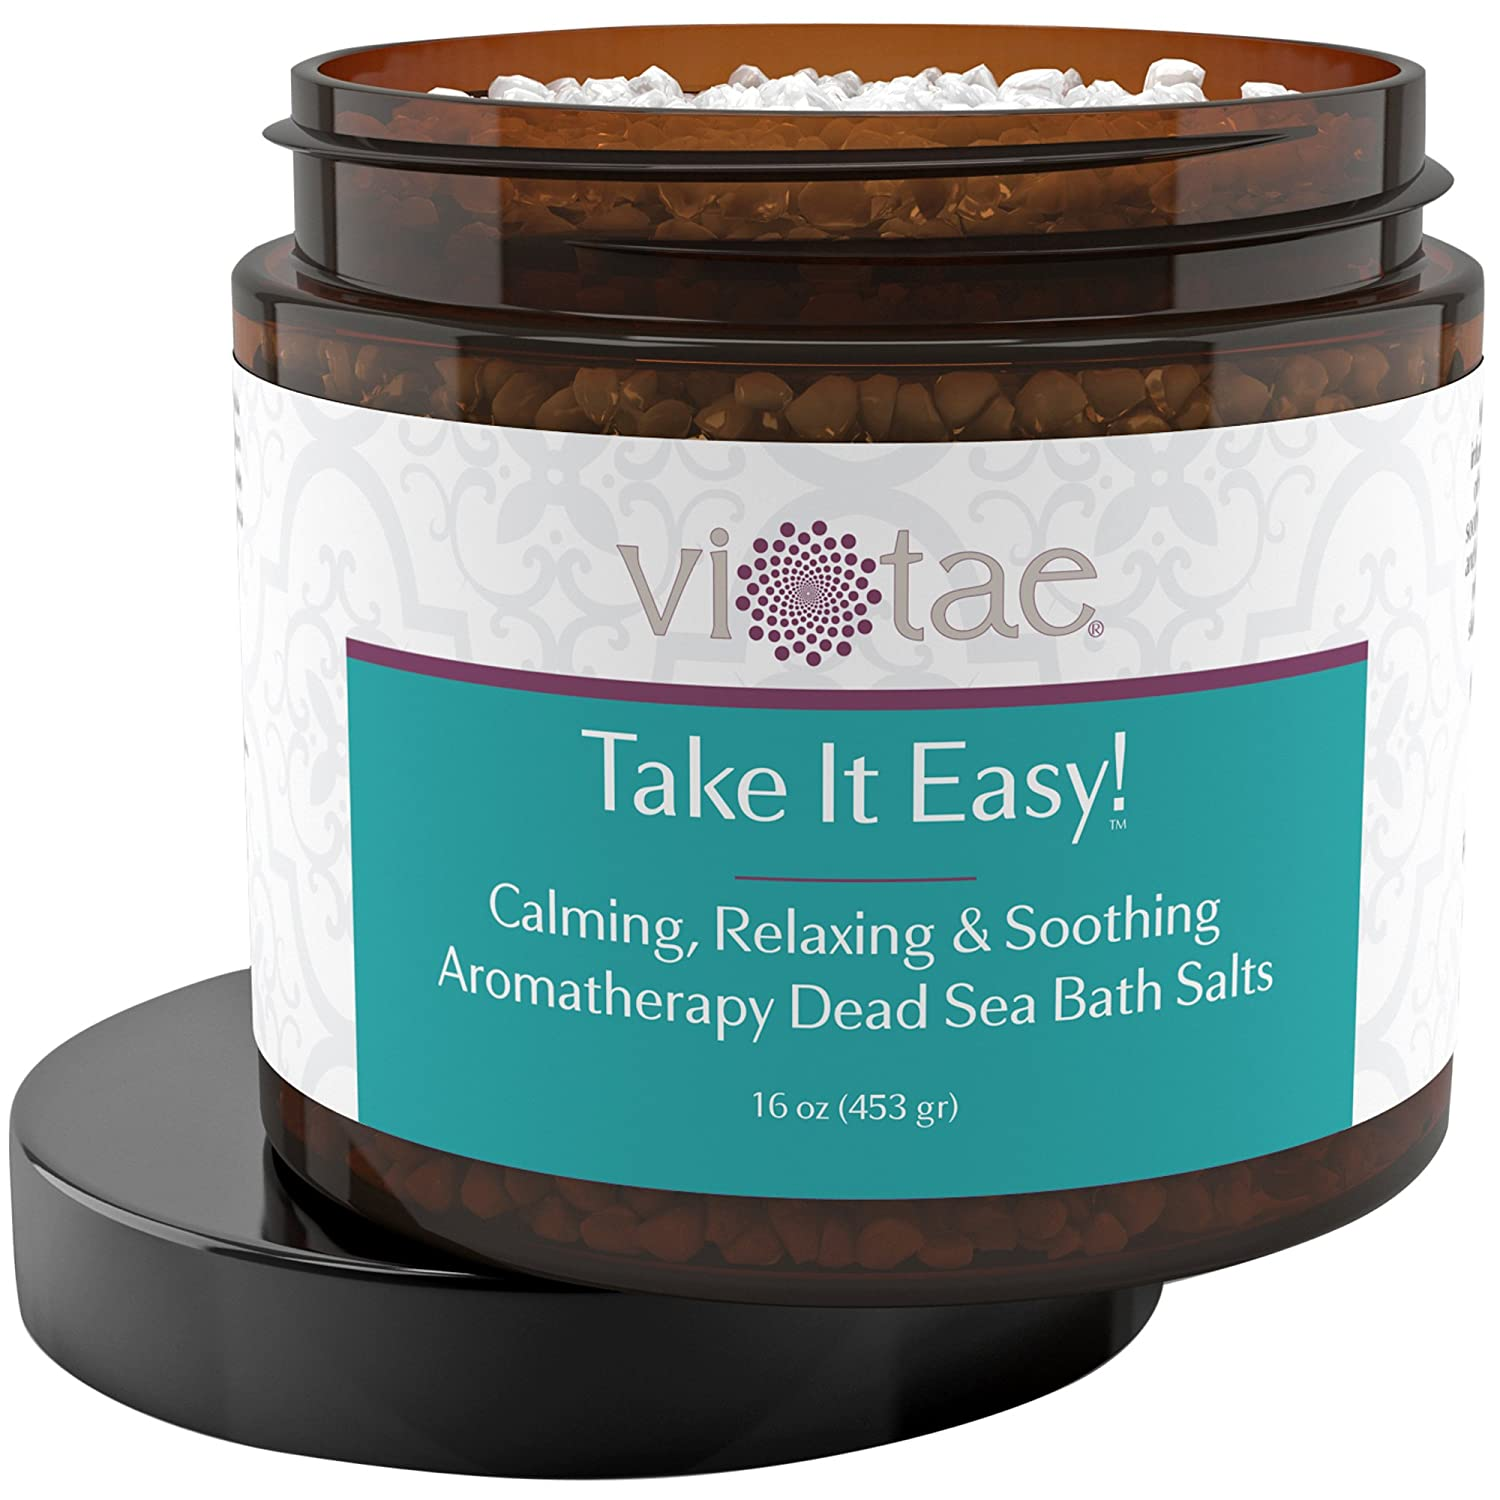 Stress Reduction, Relaxation & Soothing Aromatherapy Dead Sea Bath Salts - 'Take It Easy' 16oz vi-tae® 16.0oz